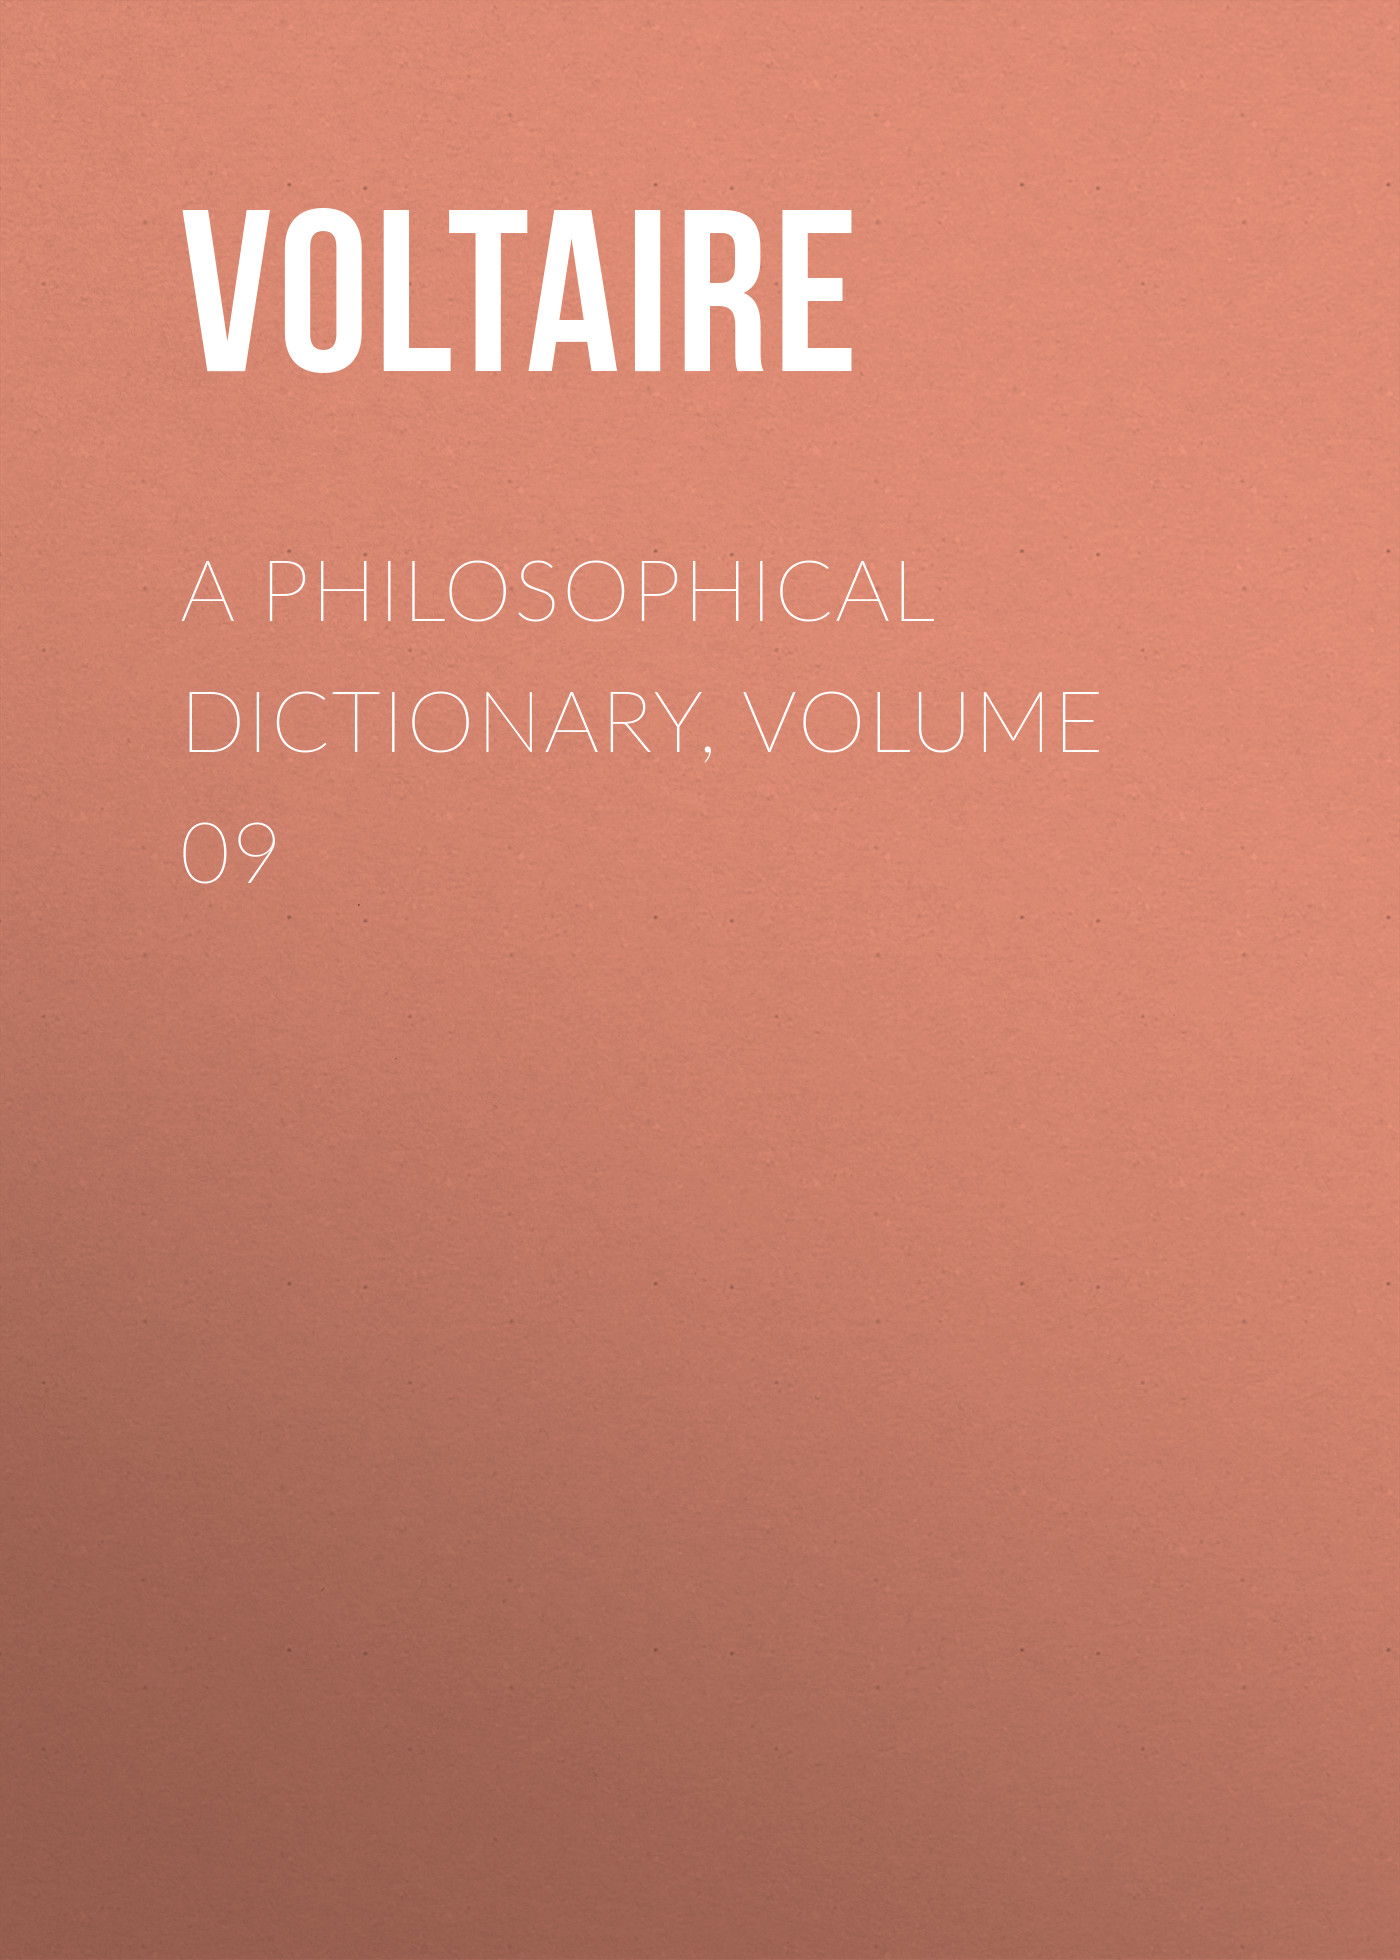 A Philosophical Dictionary, Volume 09